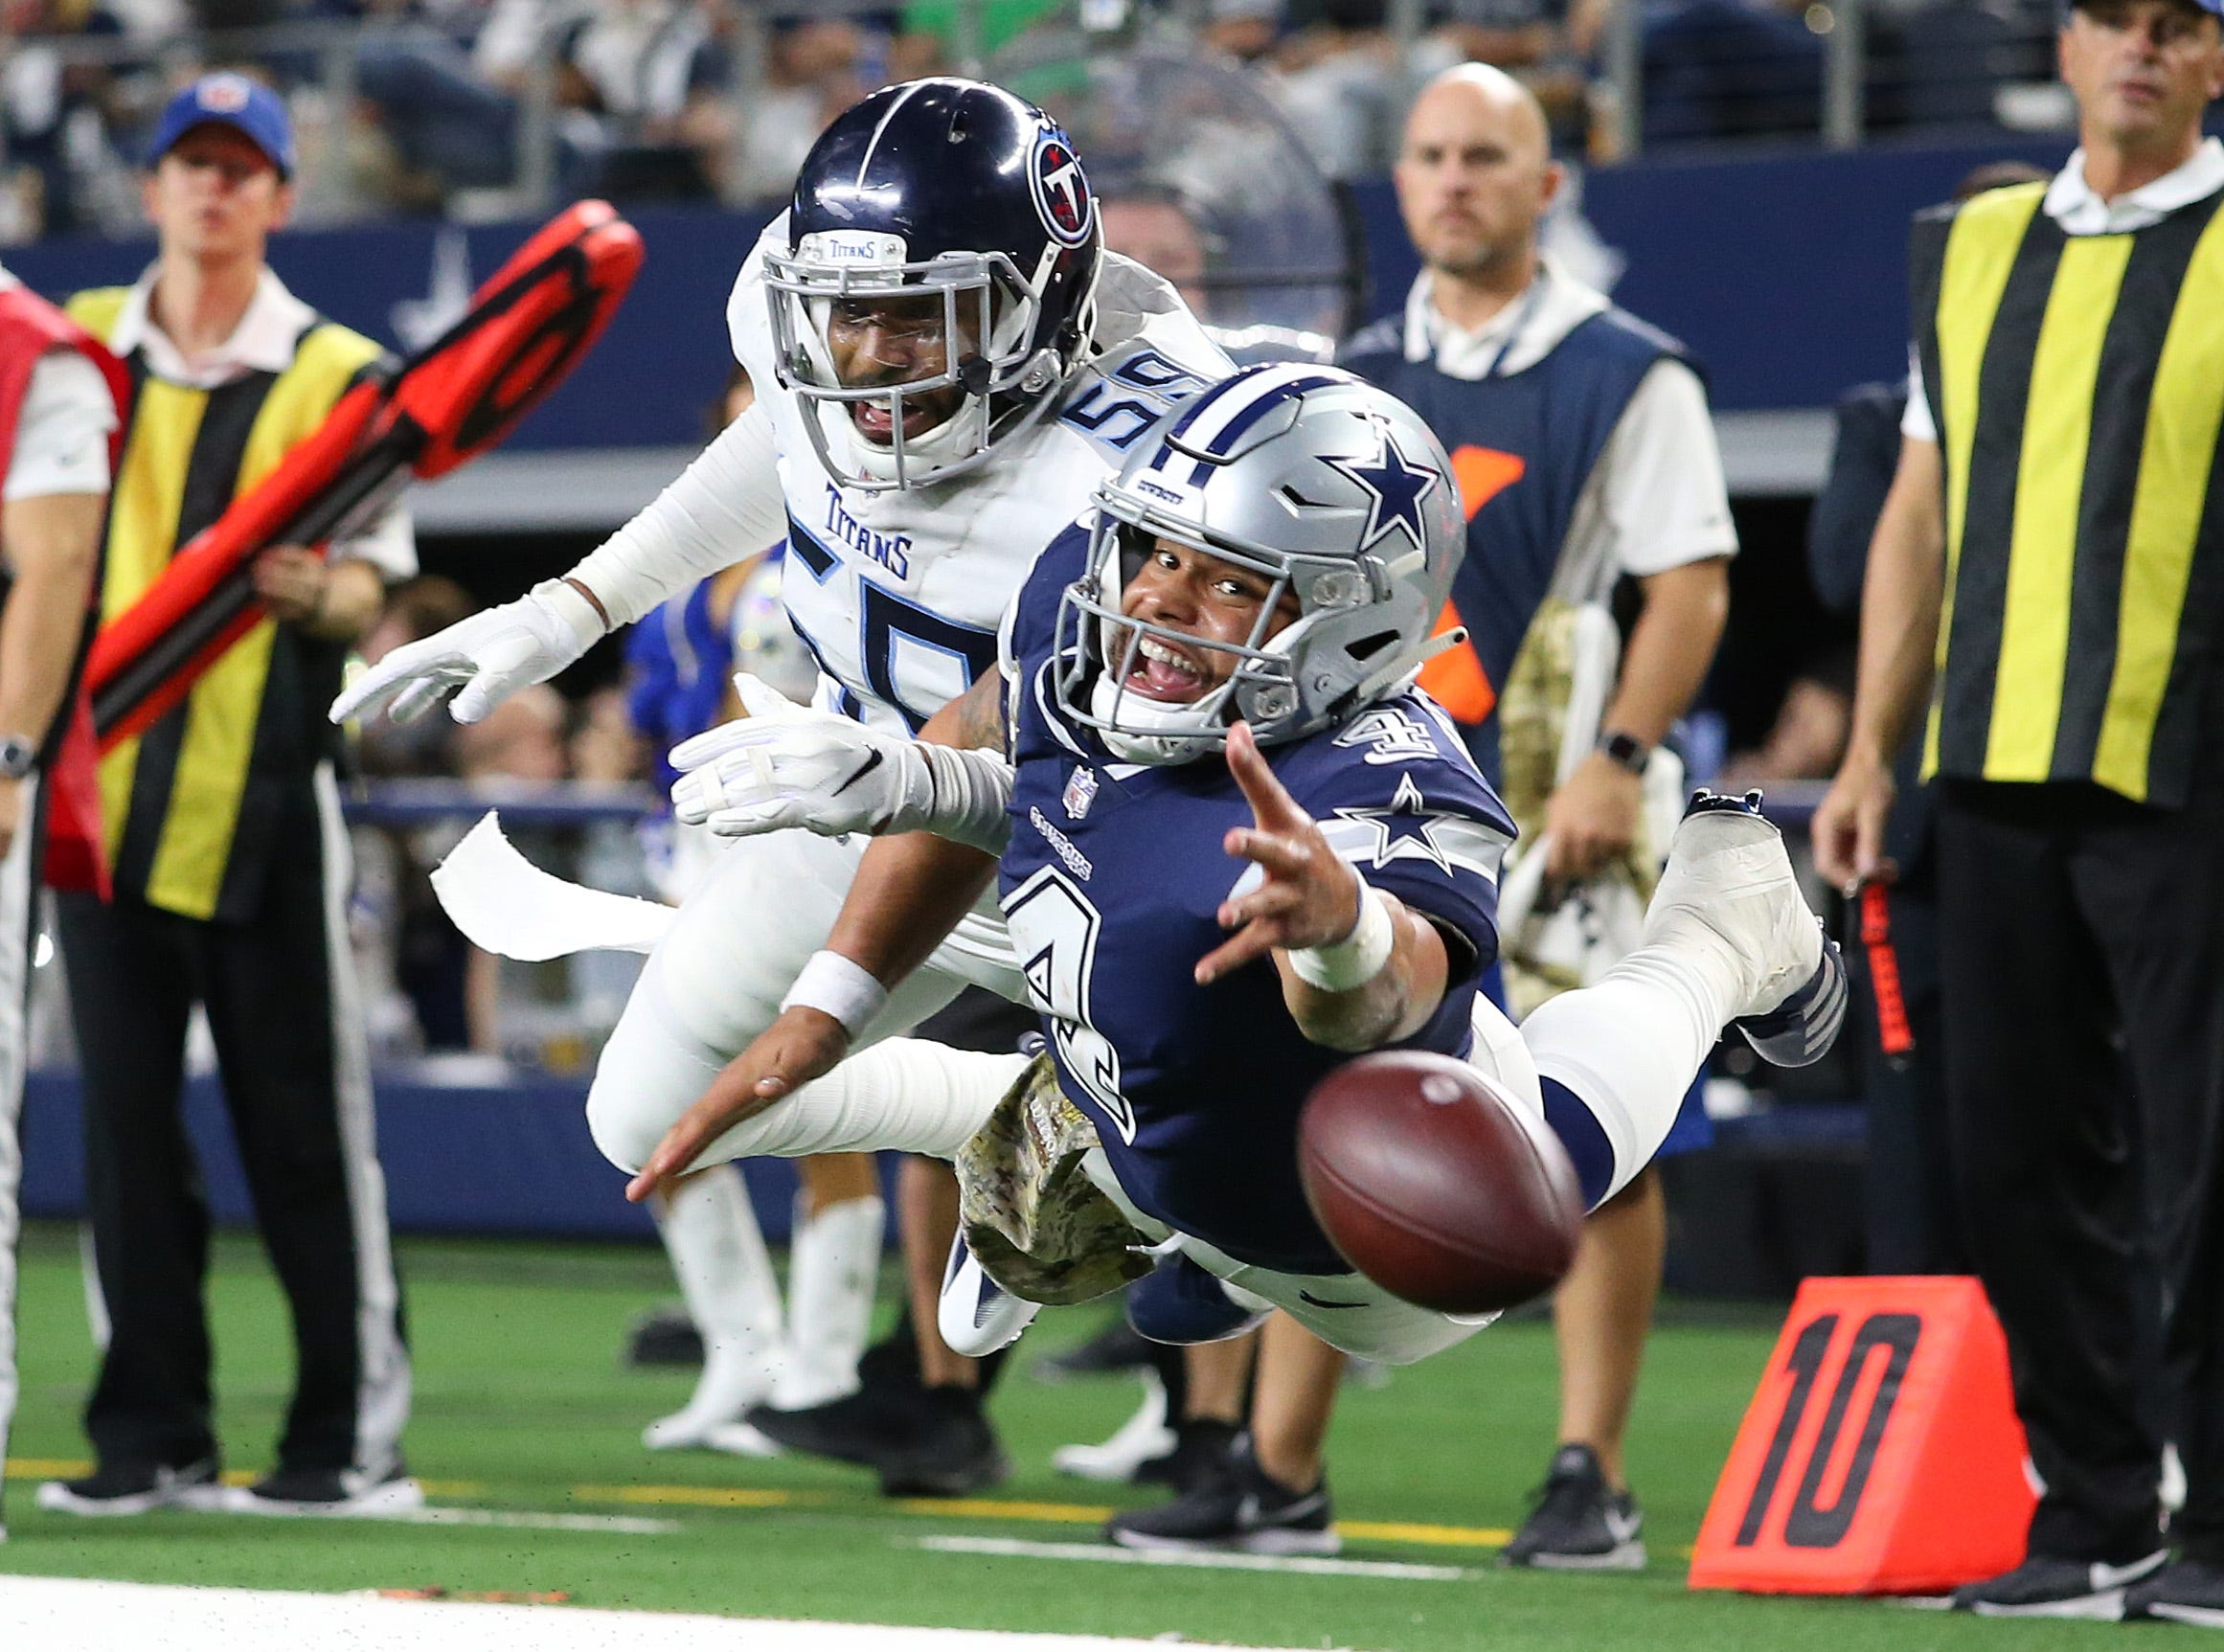 Dallas Cowboys quarterback Dak Prescott (4) dives for a pass in the fourth quarter against Tennessee Titans linebacker Wesley Woodyard (59) at AT&T Stadium. Mandatory Credit: Matthew Emmons-USA TODAY Sports